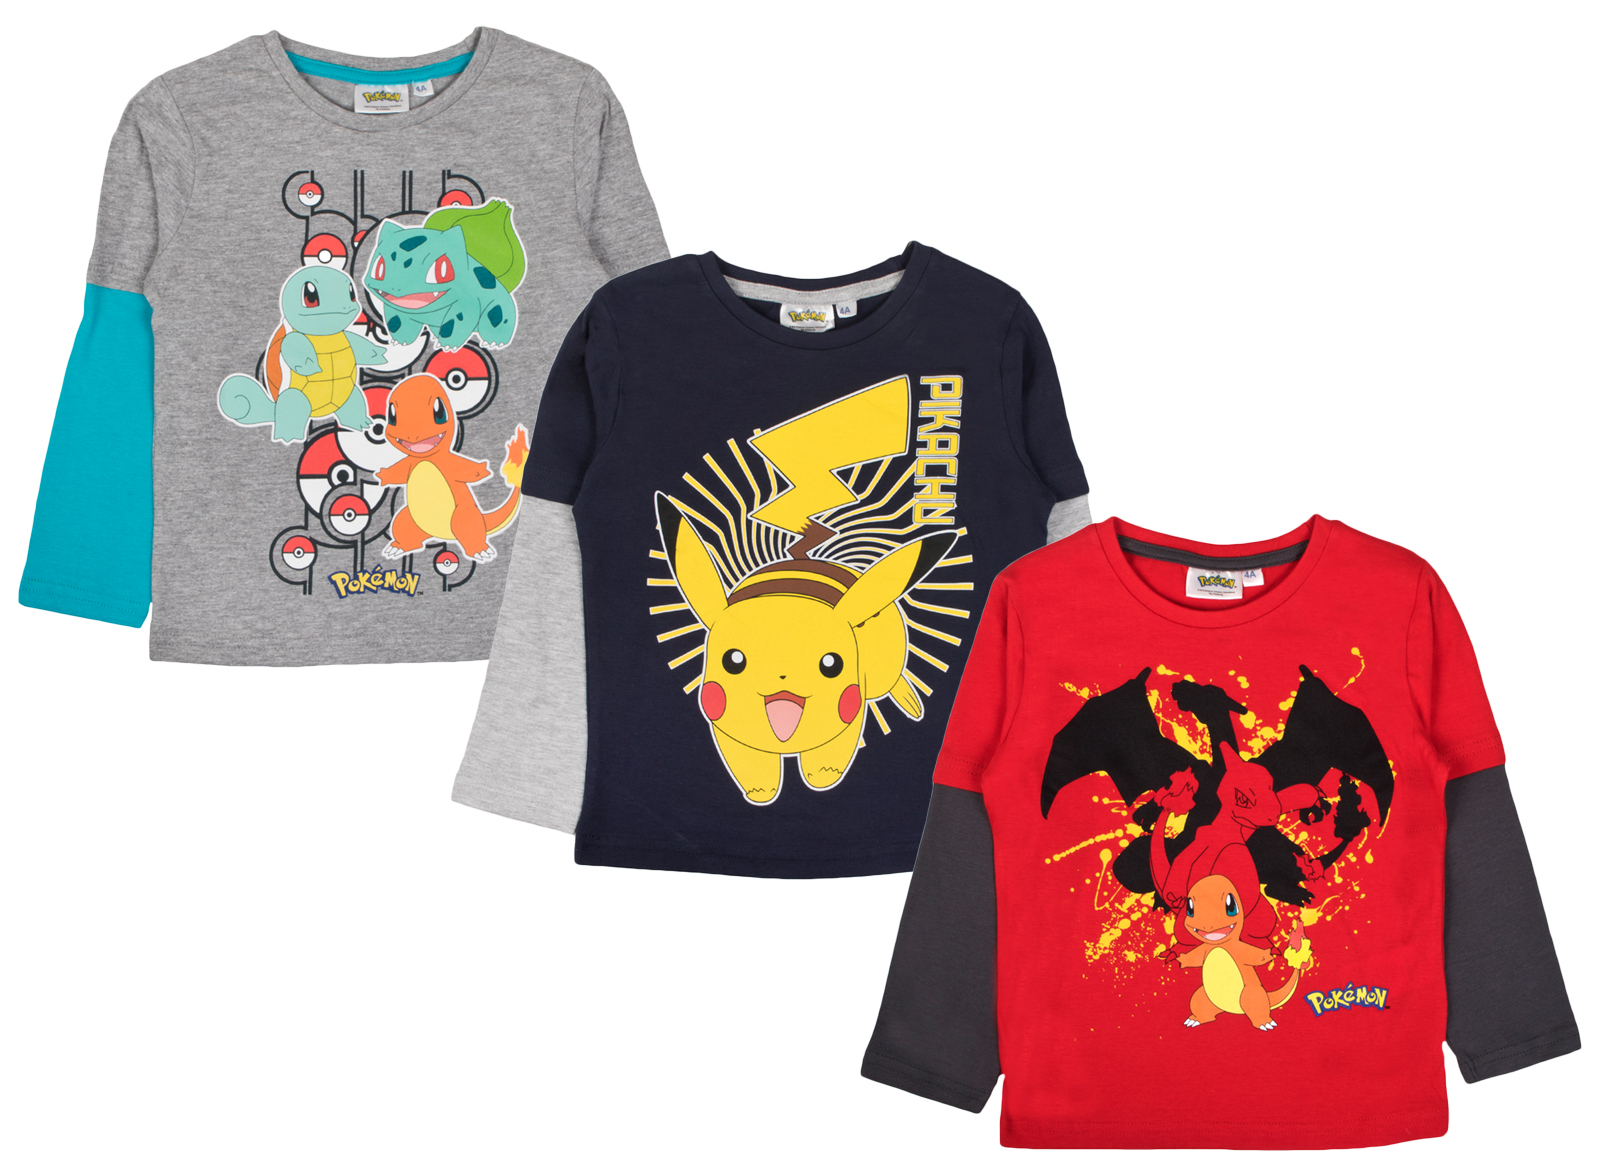 9f4d19b41f1 Boys Pokemon Long Sleeve Top 100% Cotton T Shirt Beach Summer Shirt Kids  Size